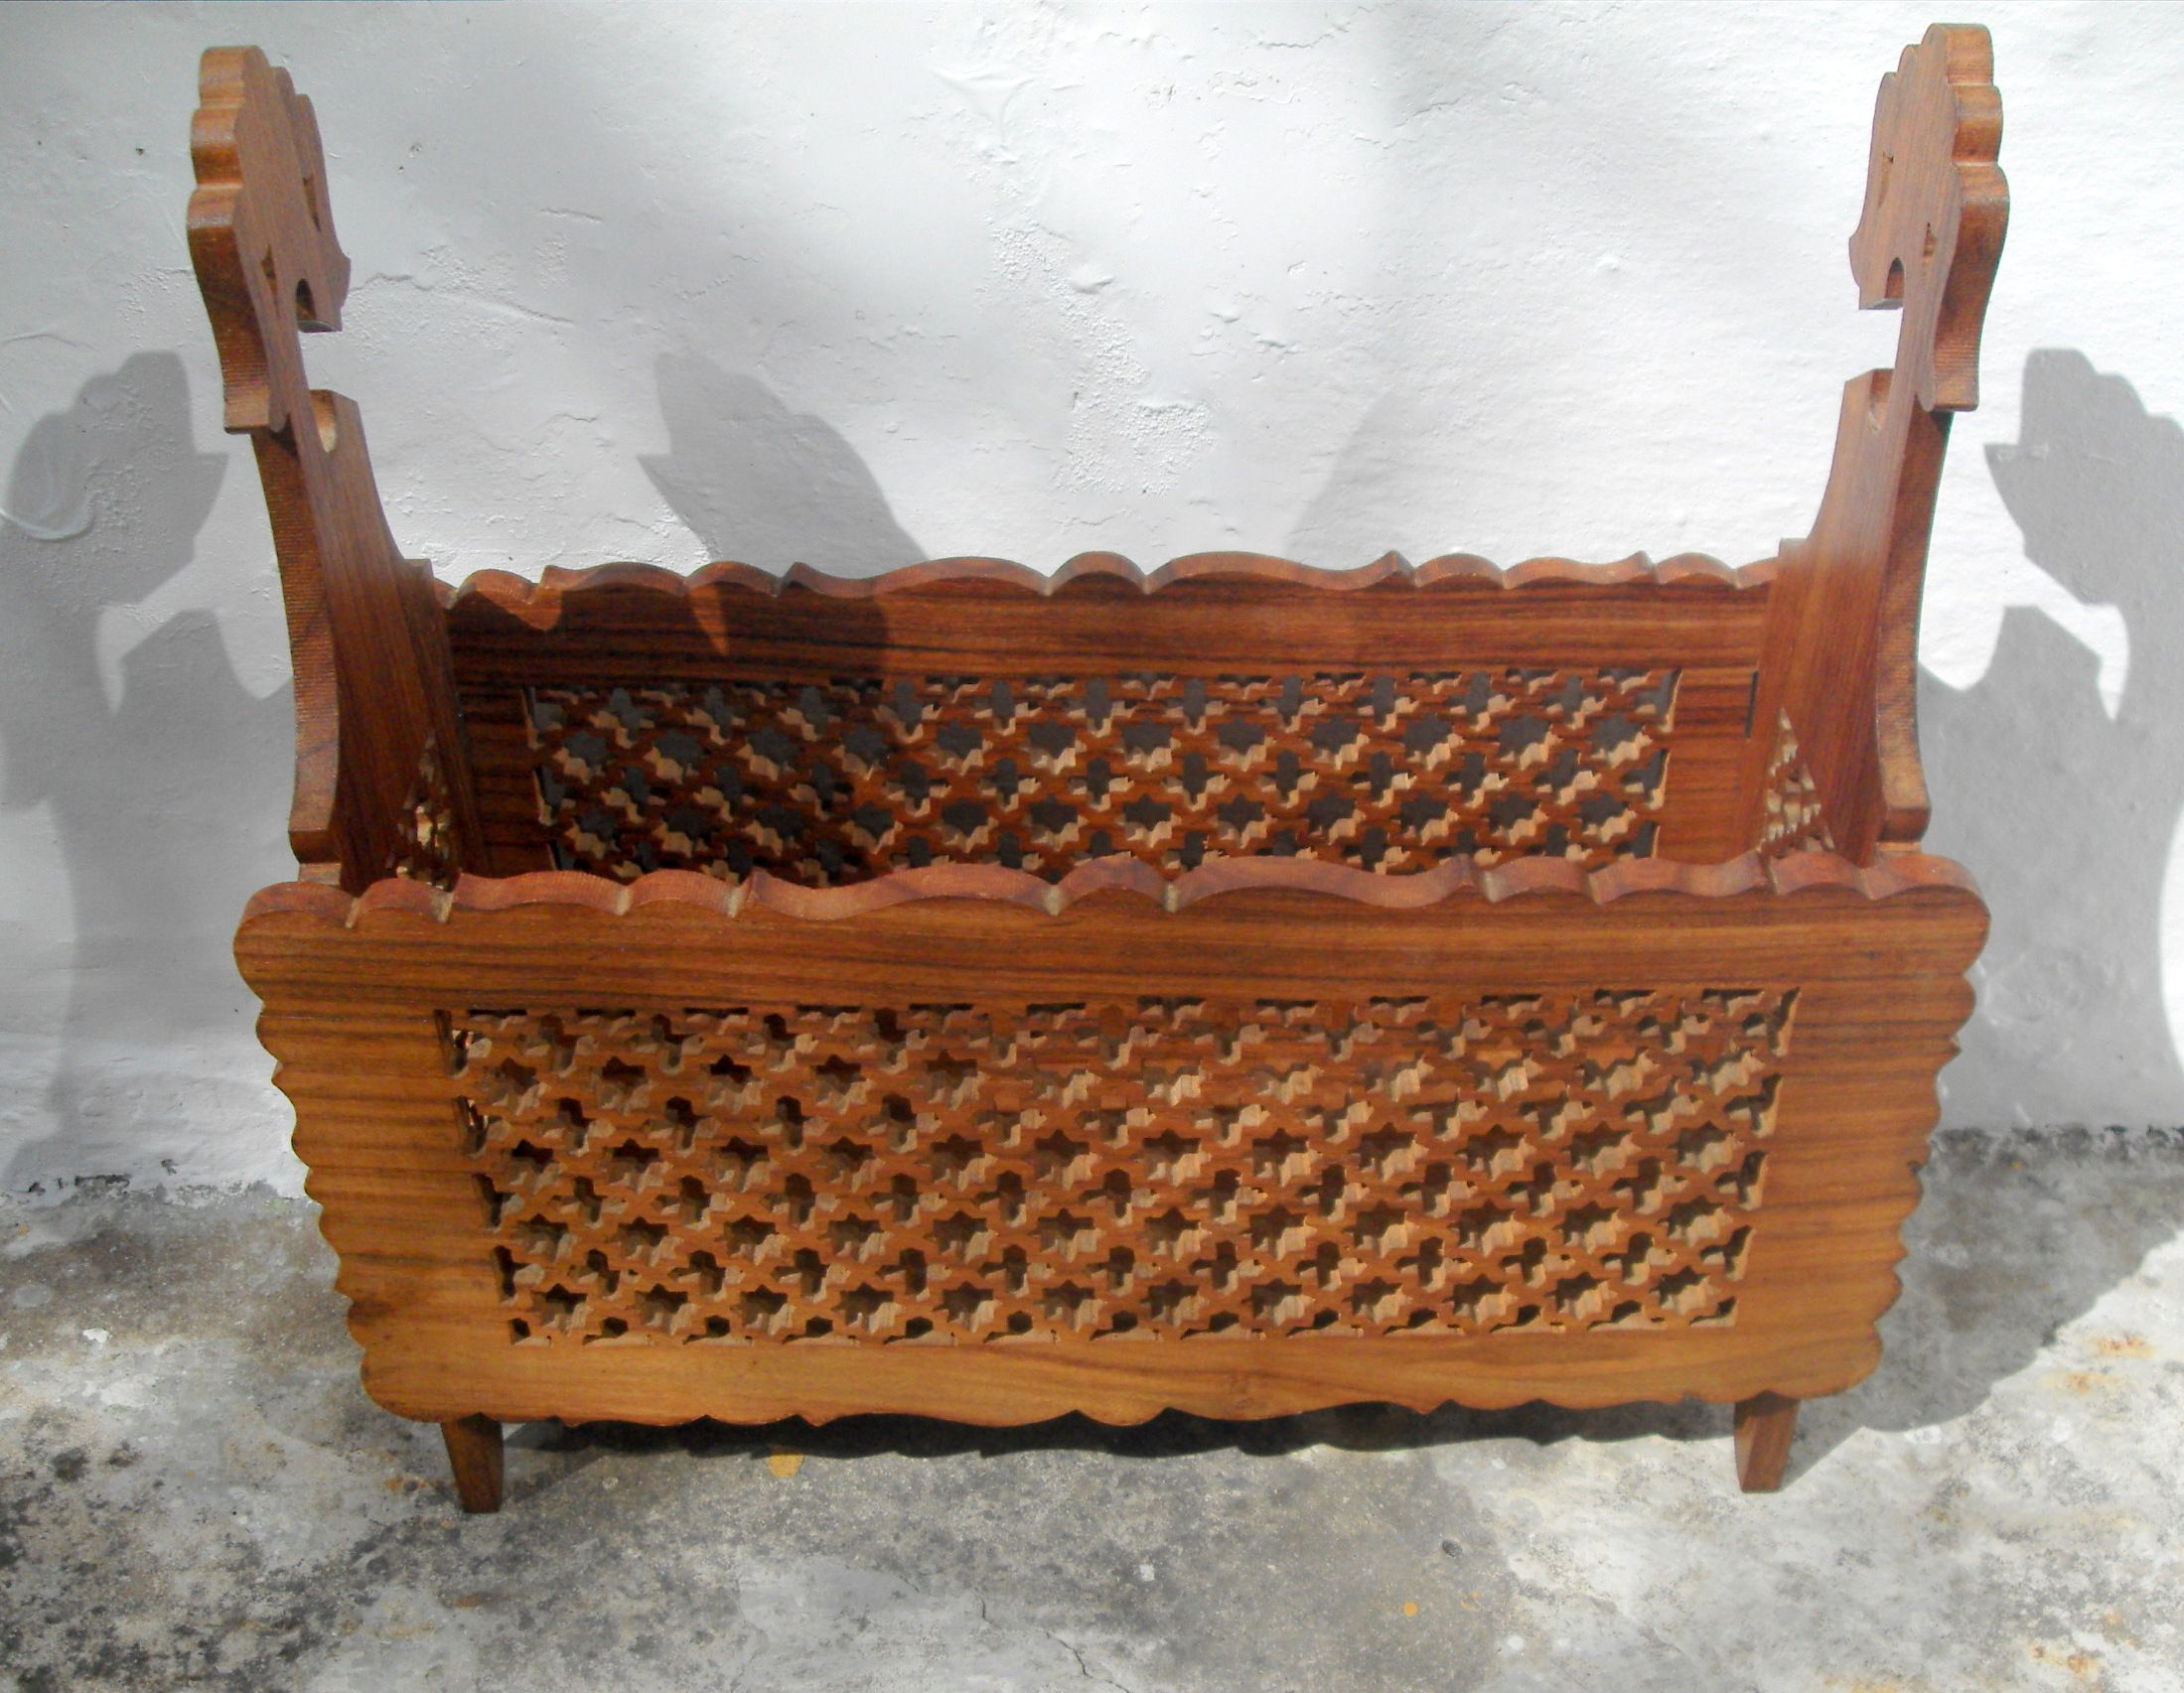 11419 £32 Inc UK Post. Offers Welcome. Large Carved Wood Magazine Rack (